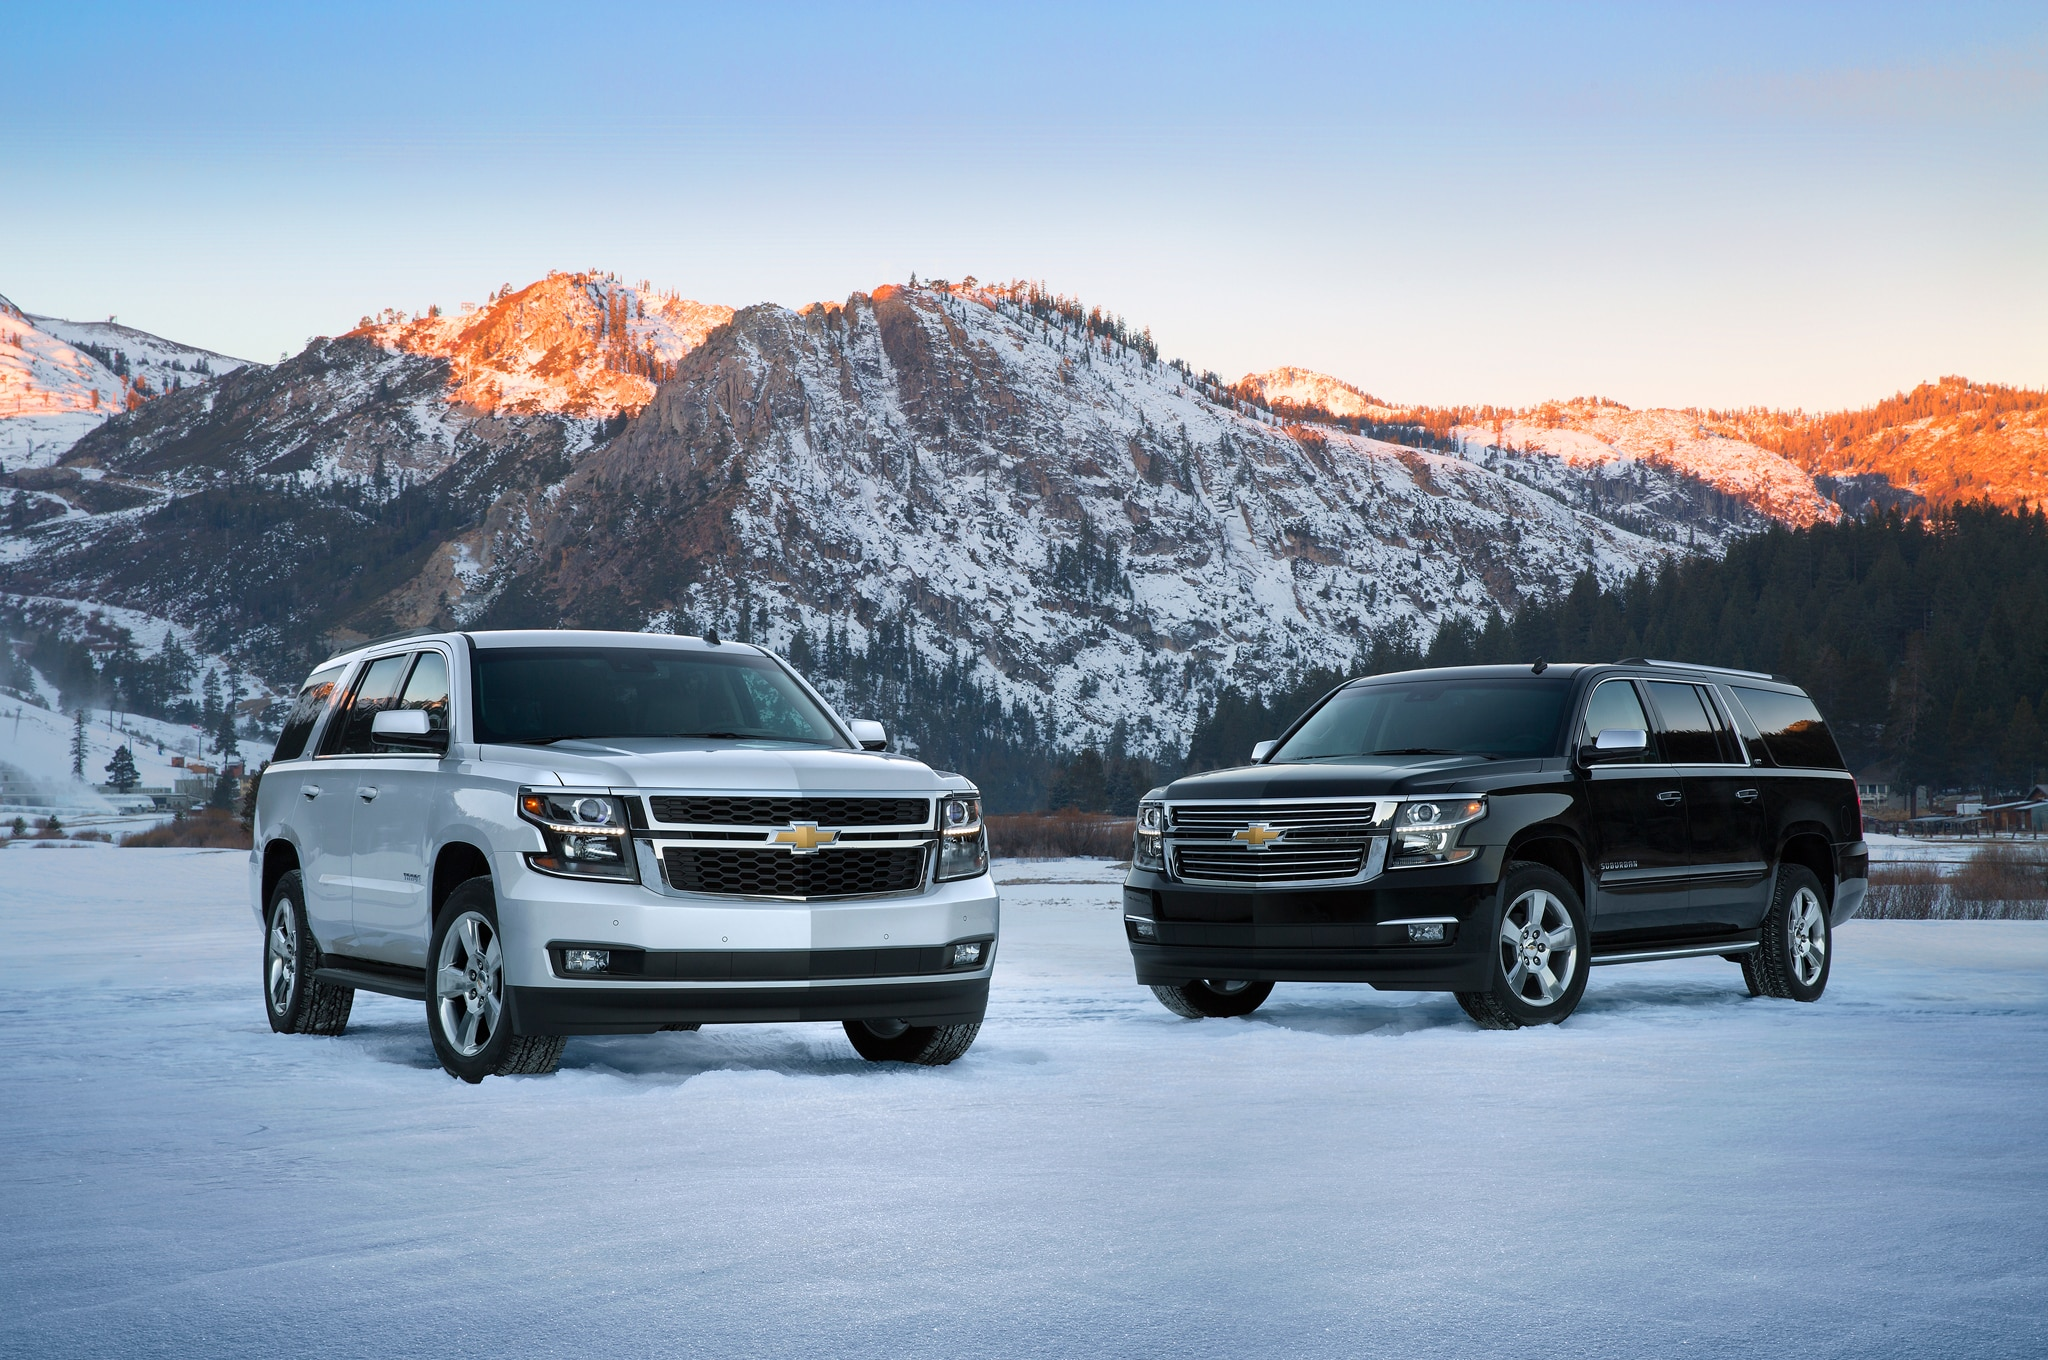 2015 Chevrolet Tahoe And Suburban Review